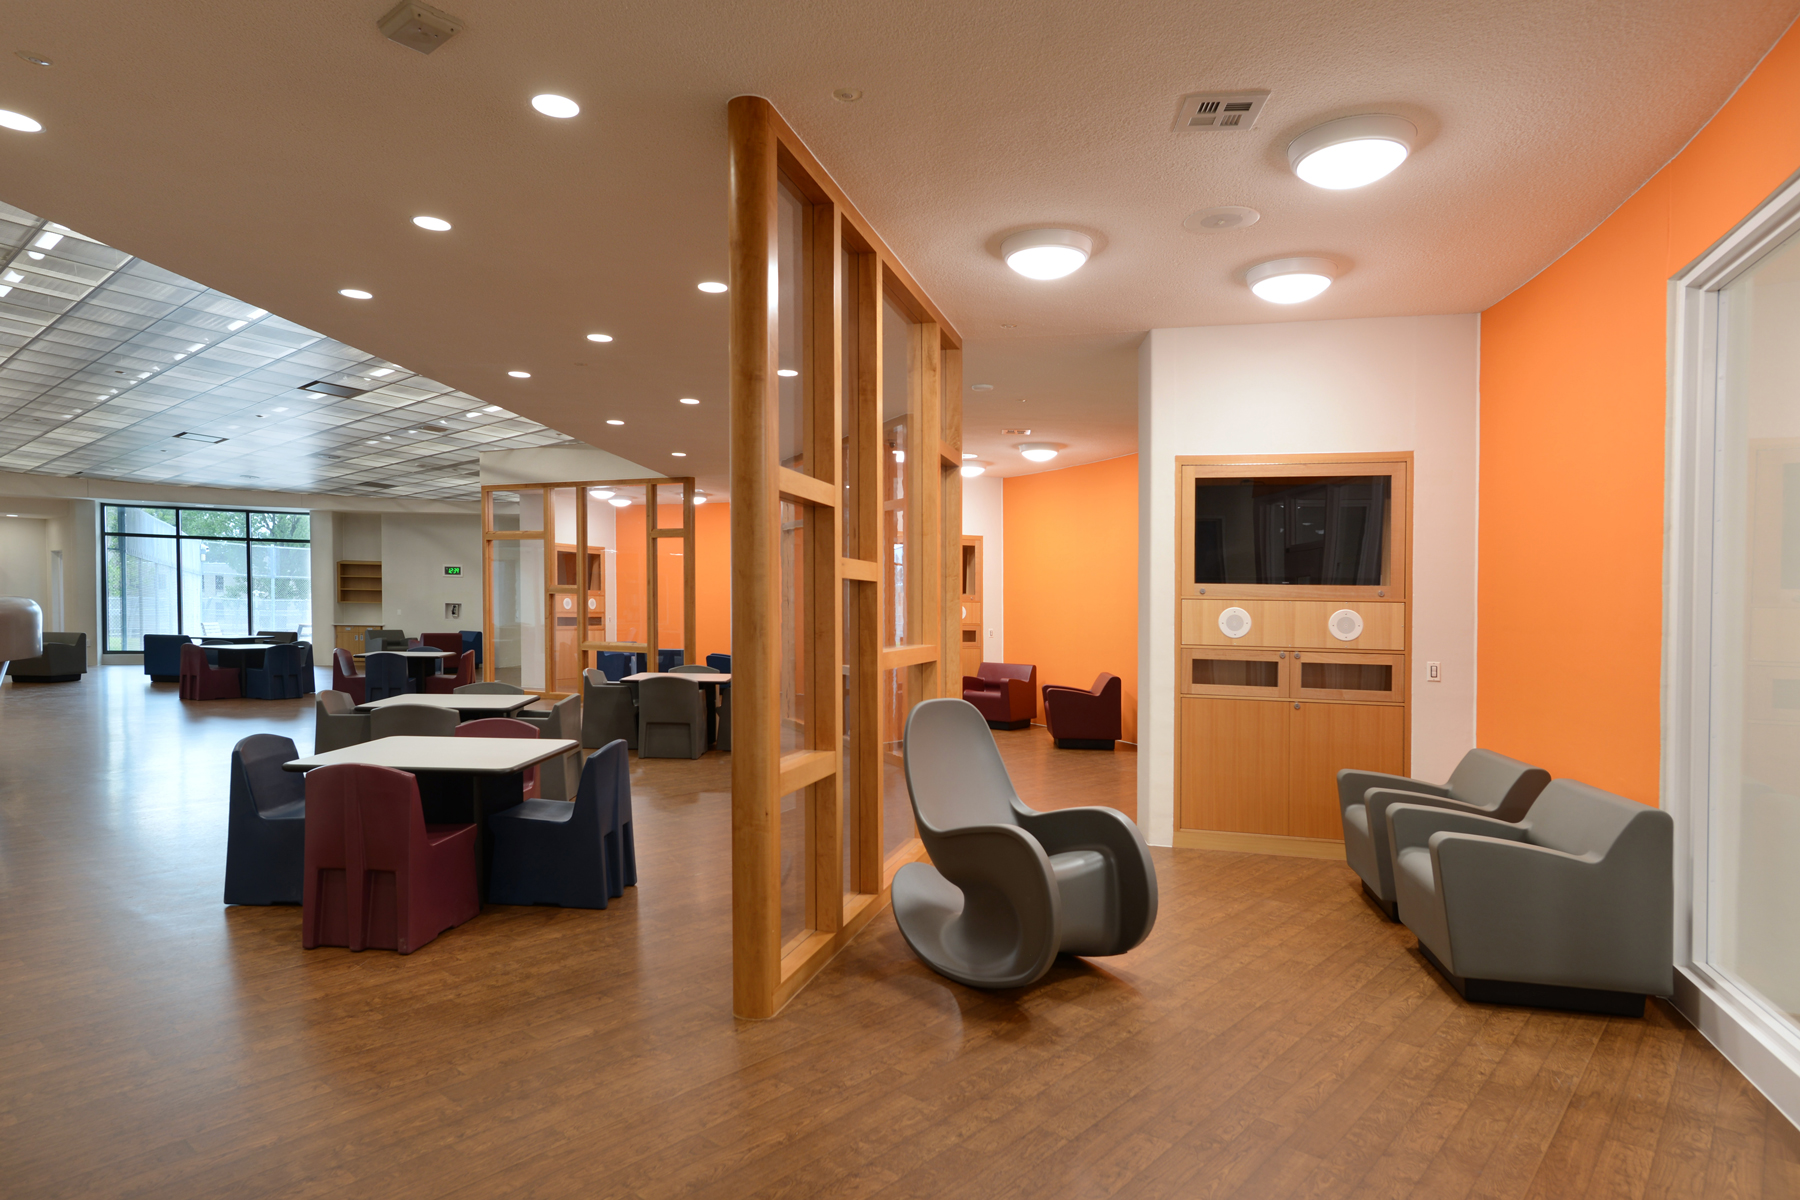 Behavioral Healthcare common area featuring Rocksmart rocking chairs